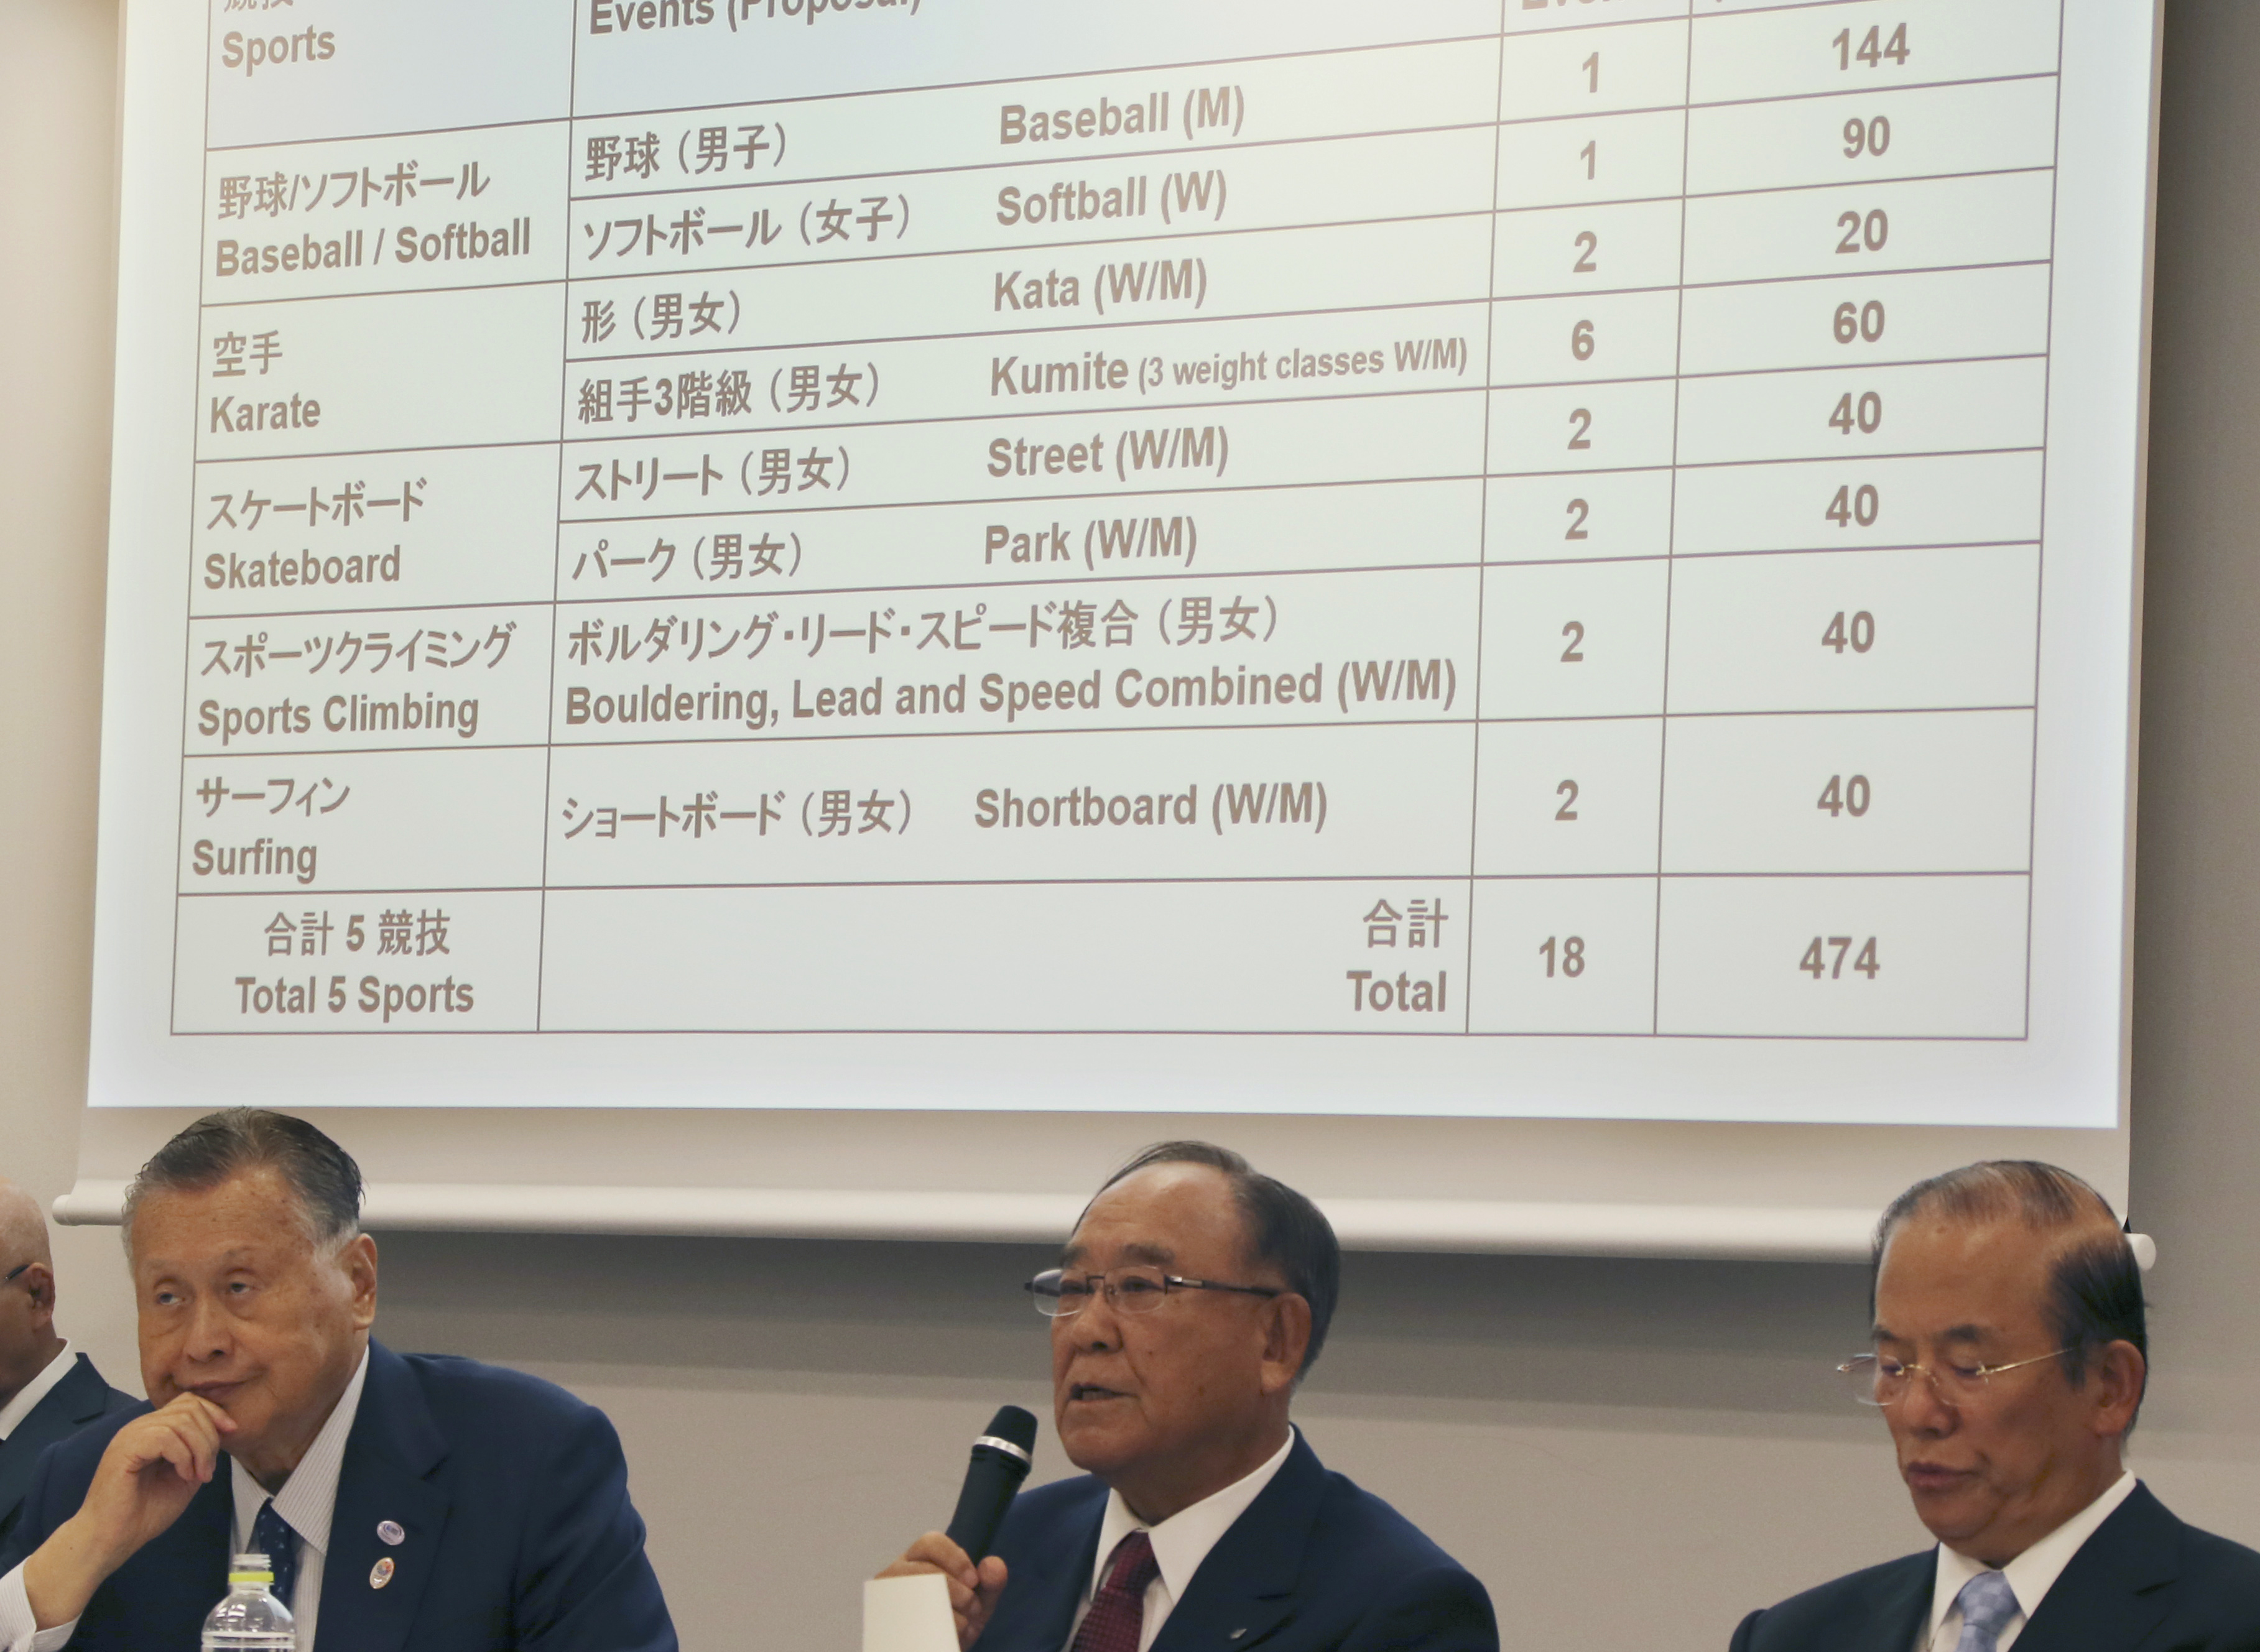 Tokyo 2020 Olympics Honorary President Fujio Mitarai, center, announces Japan's additional sports to propose to the International Olympic Committee as Tokyo 2020 President Yoshiko Mori, left, and Tokyo 2020 CEO Toshiro Muto listen during a news conference